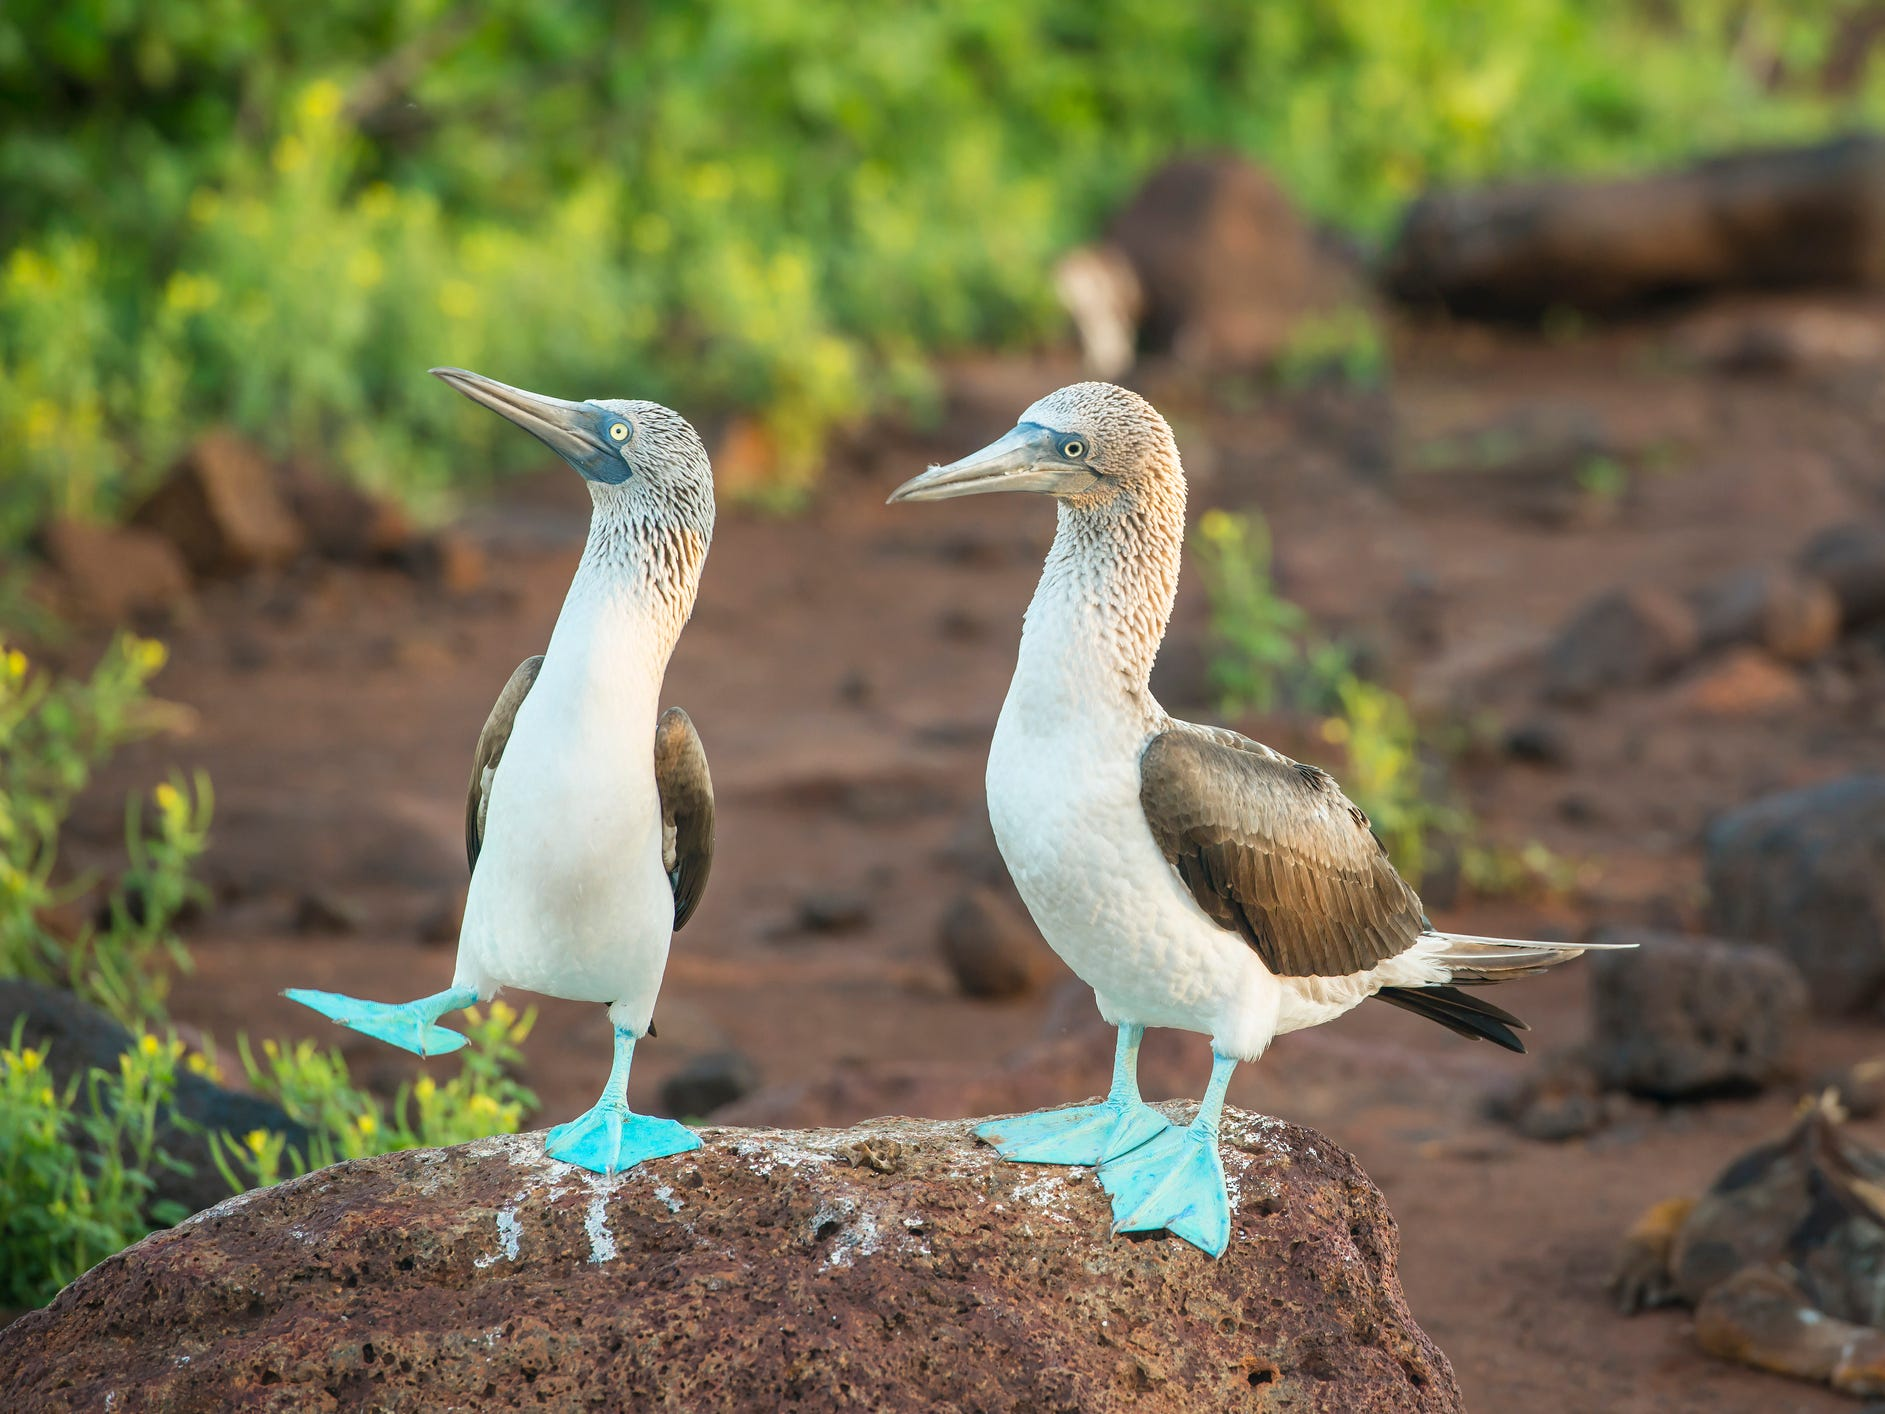 Blue-footed boobies in the Galapagos Islands, Ecuador.